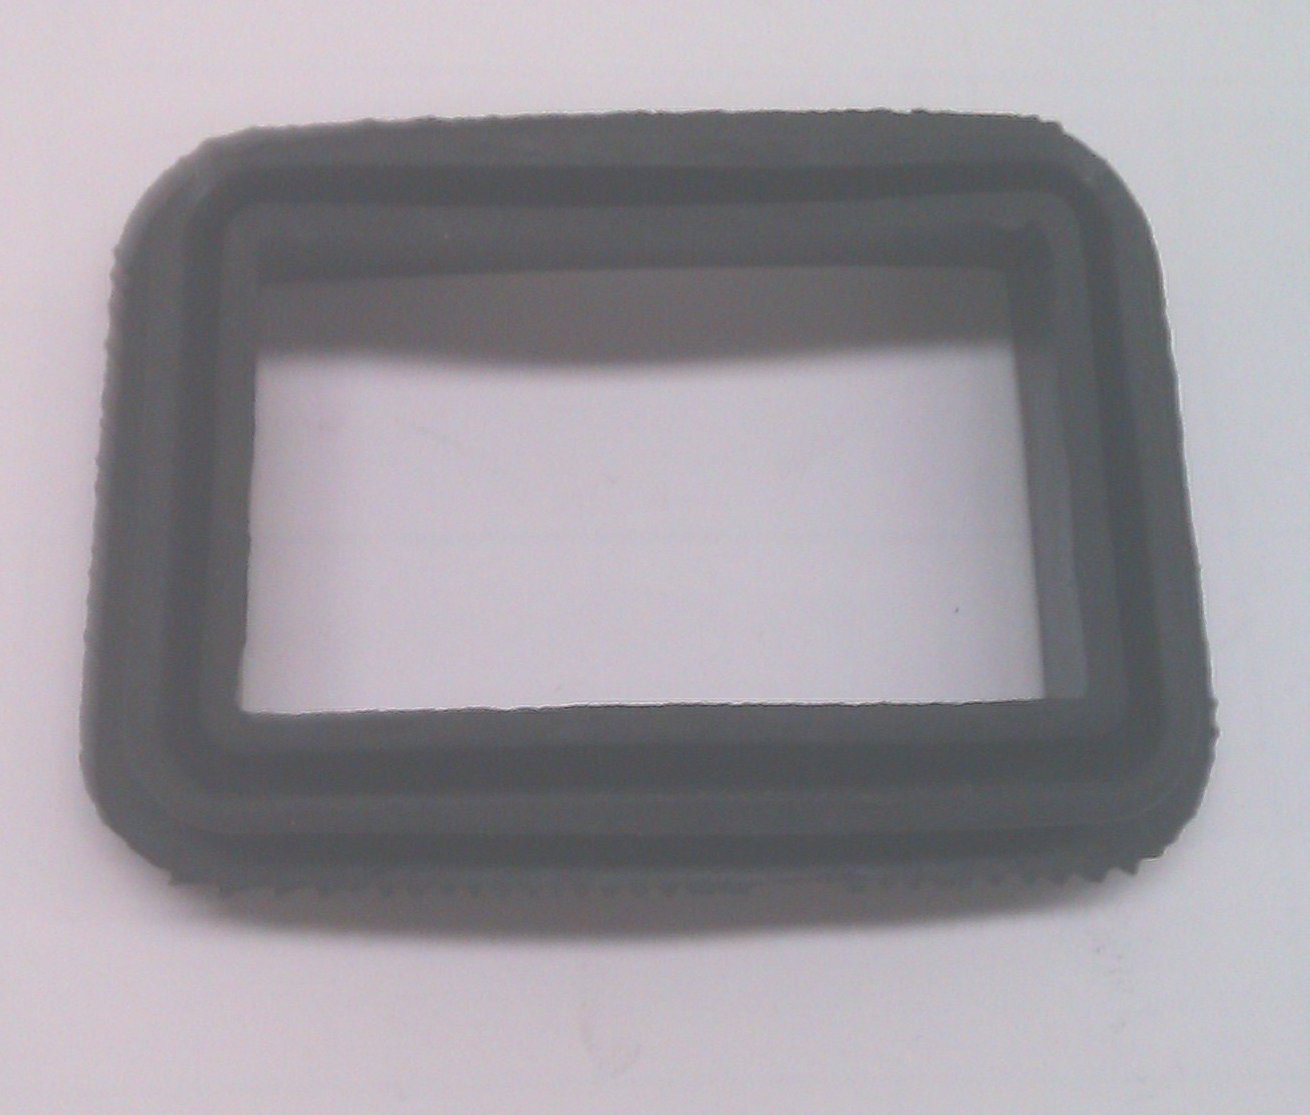 Description of AIR DUCT SEAL